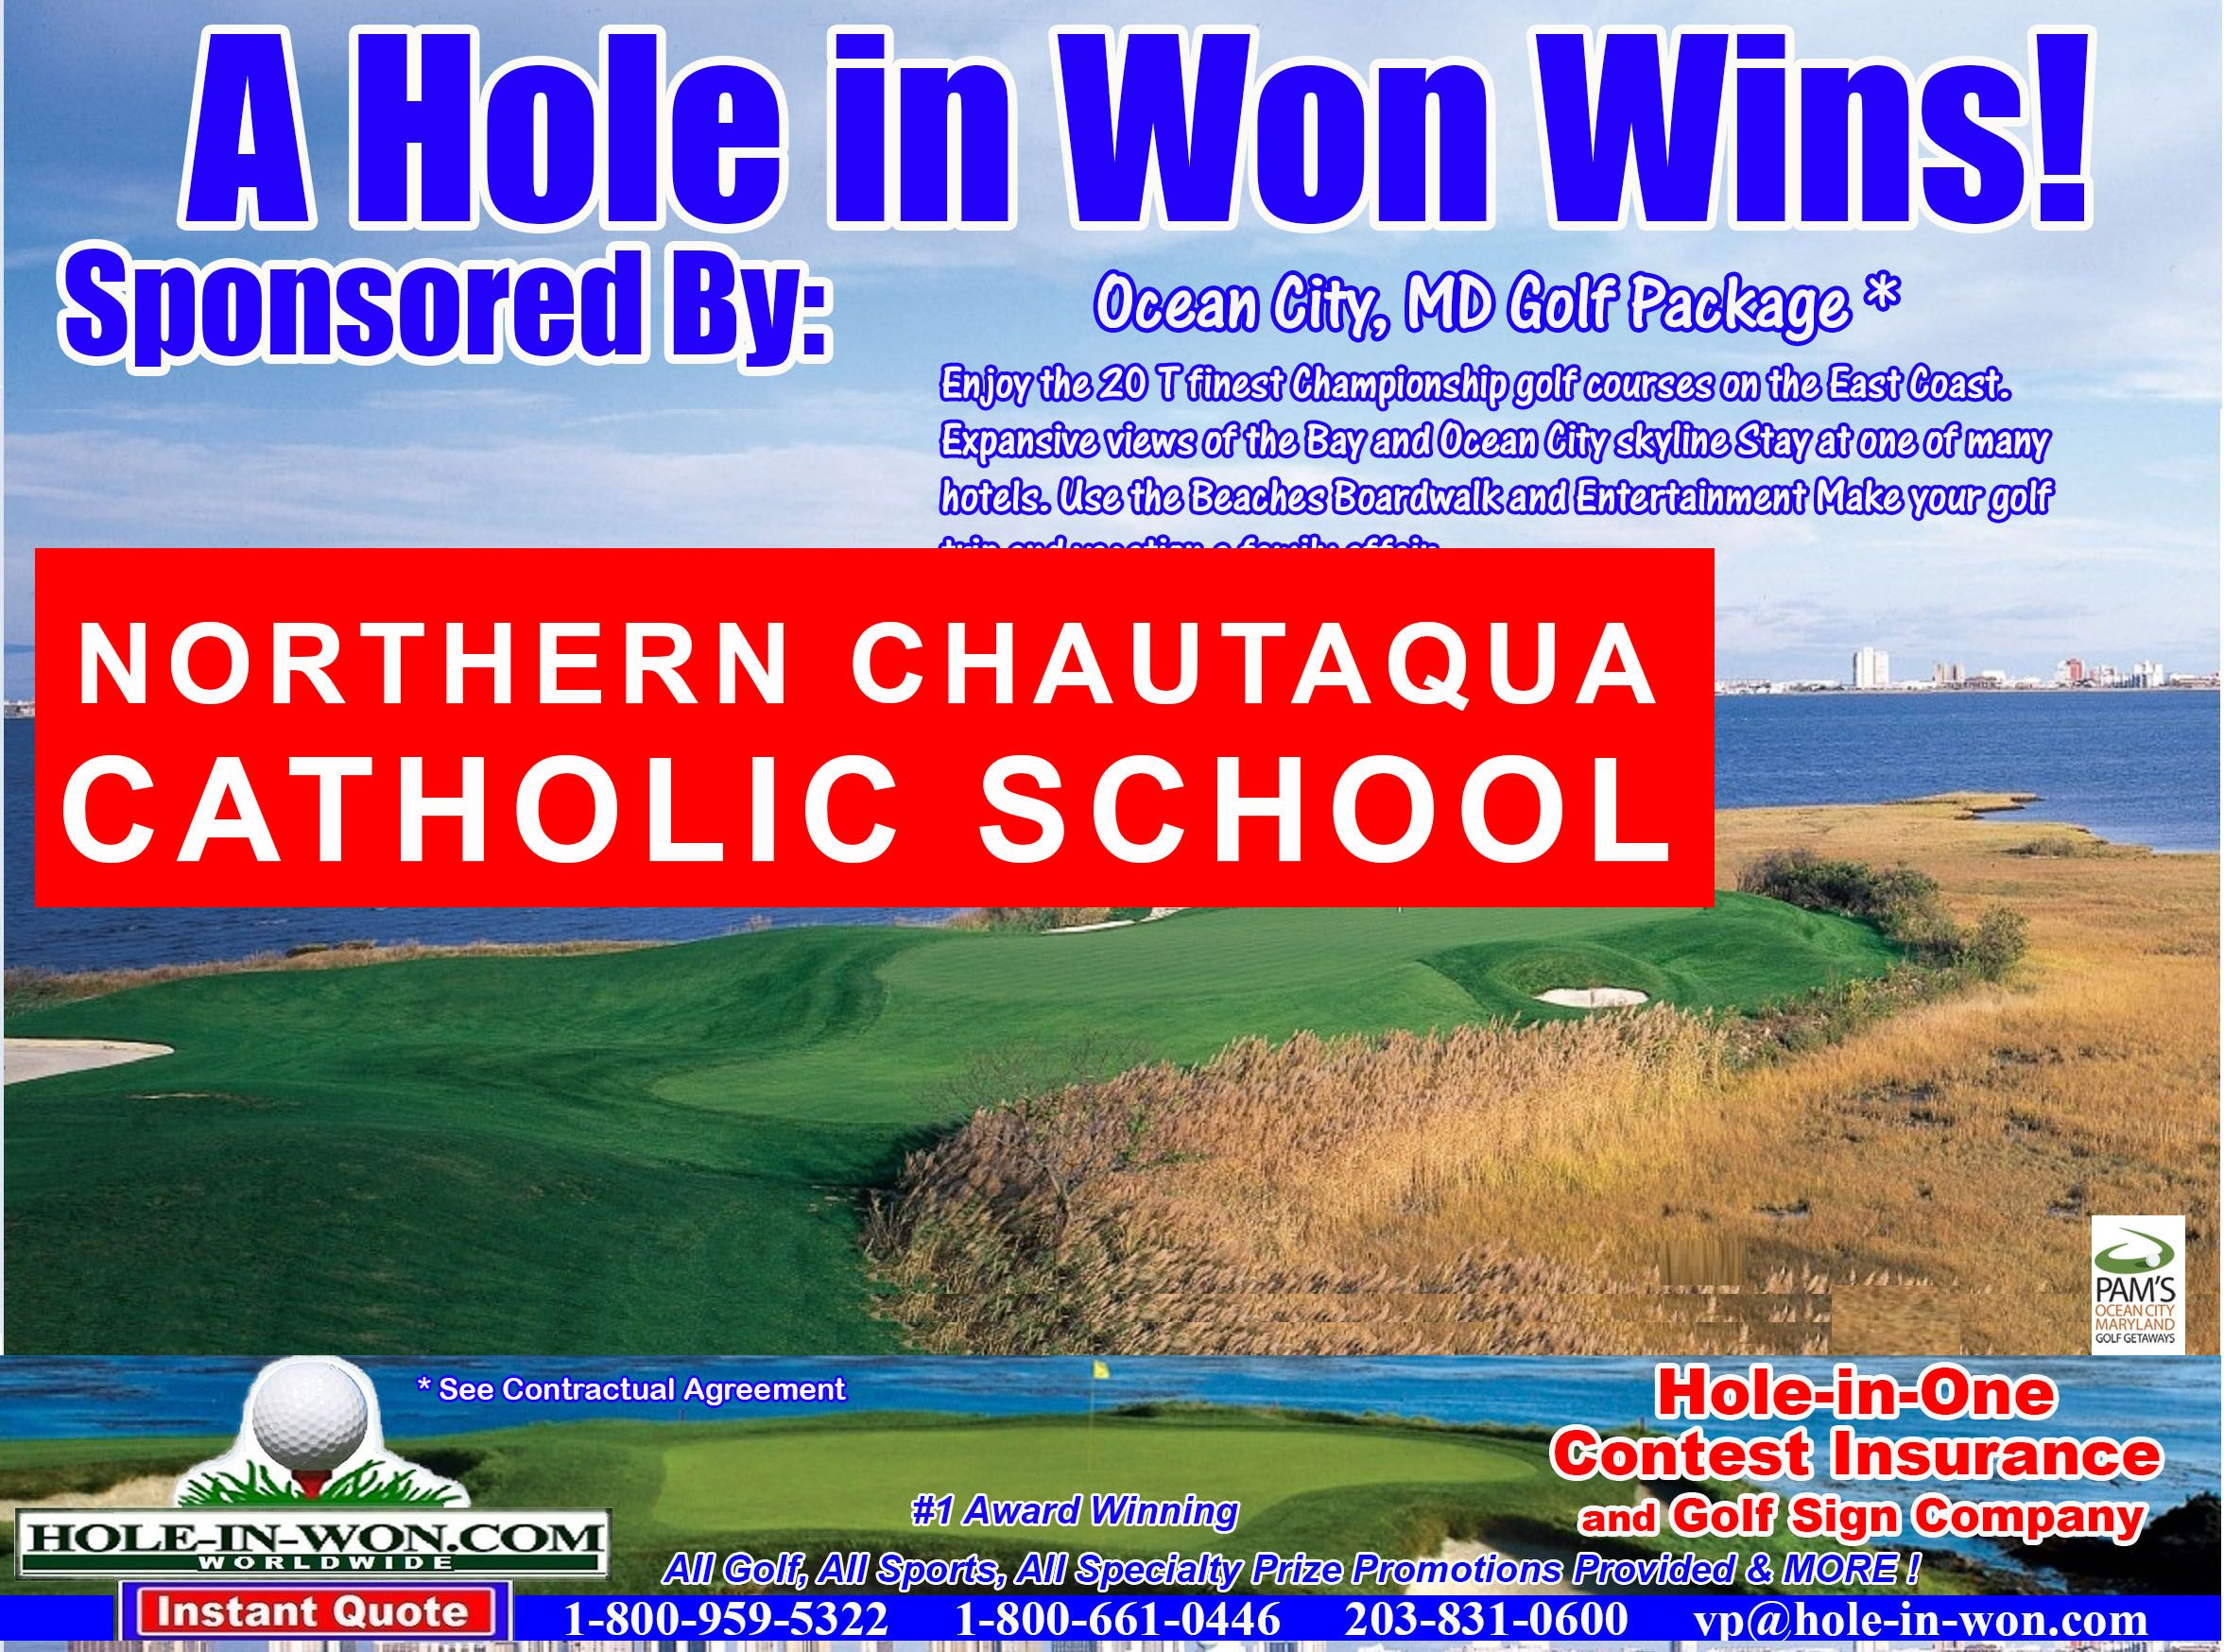 School Benefit Golf Outings Hole In One Insurance Putting Contests